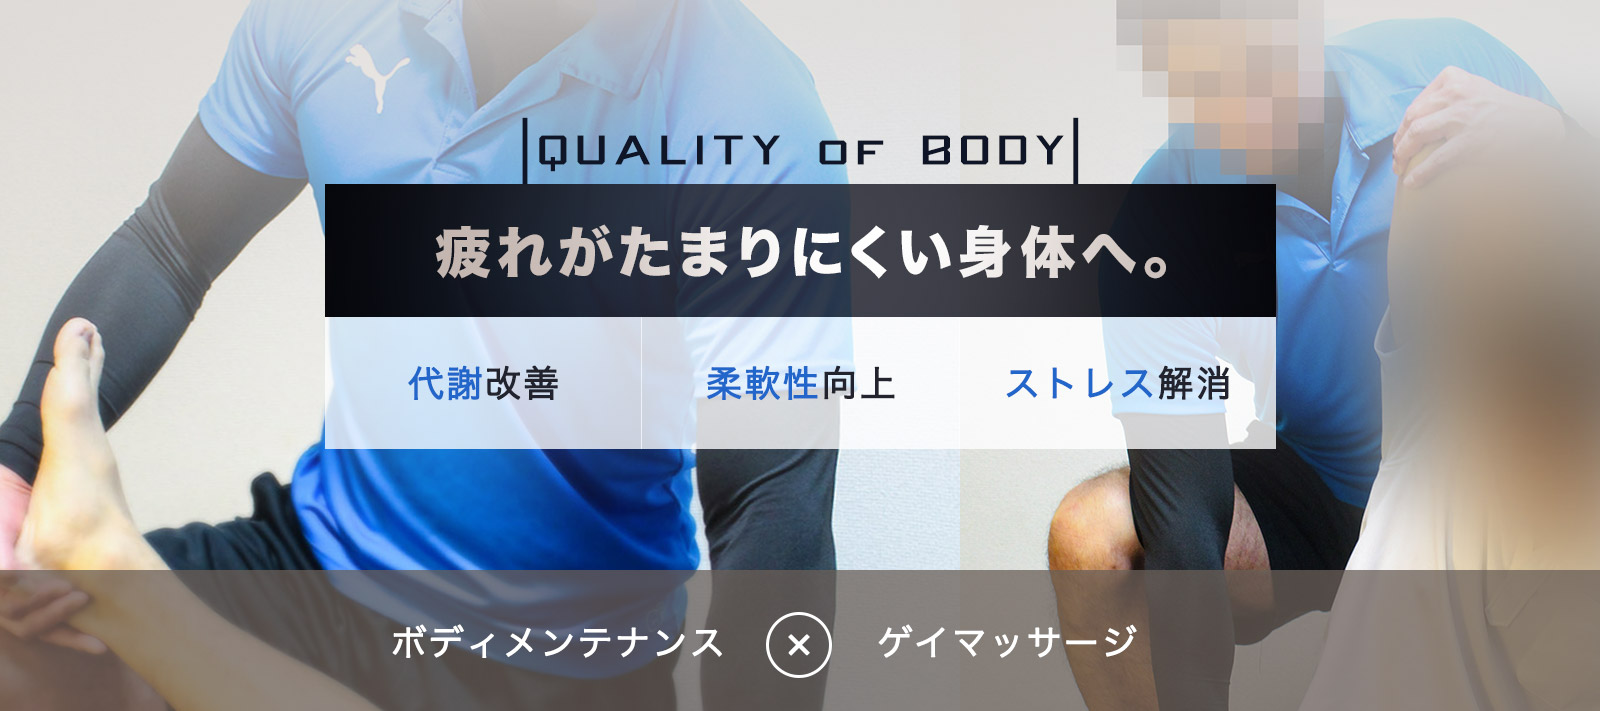 QUALITY of BODY